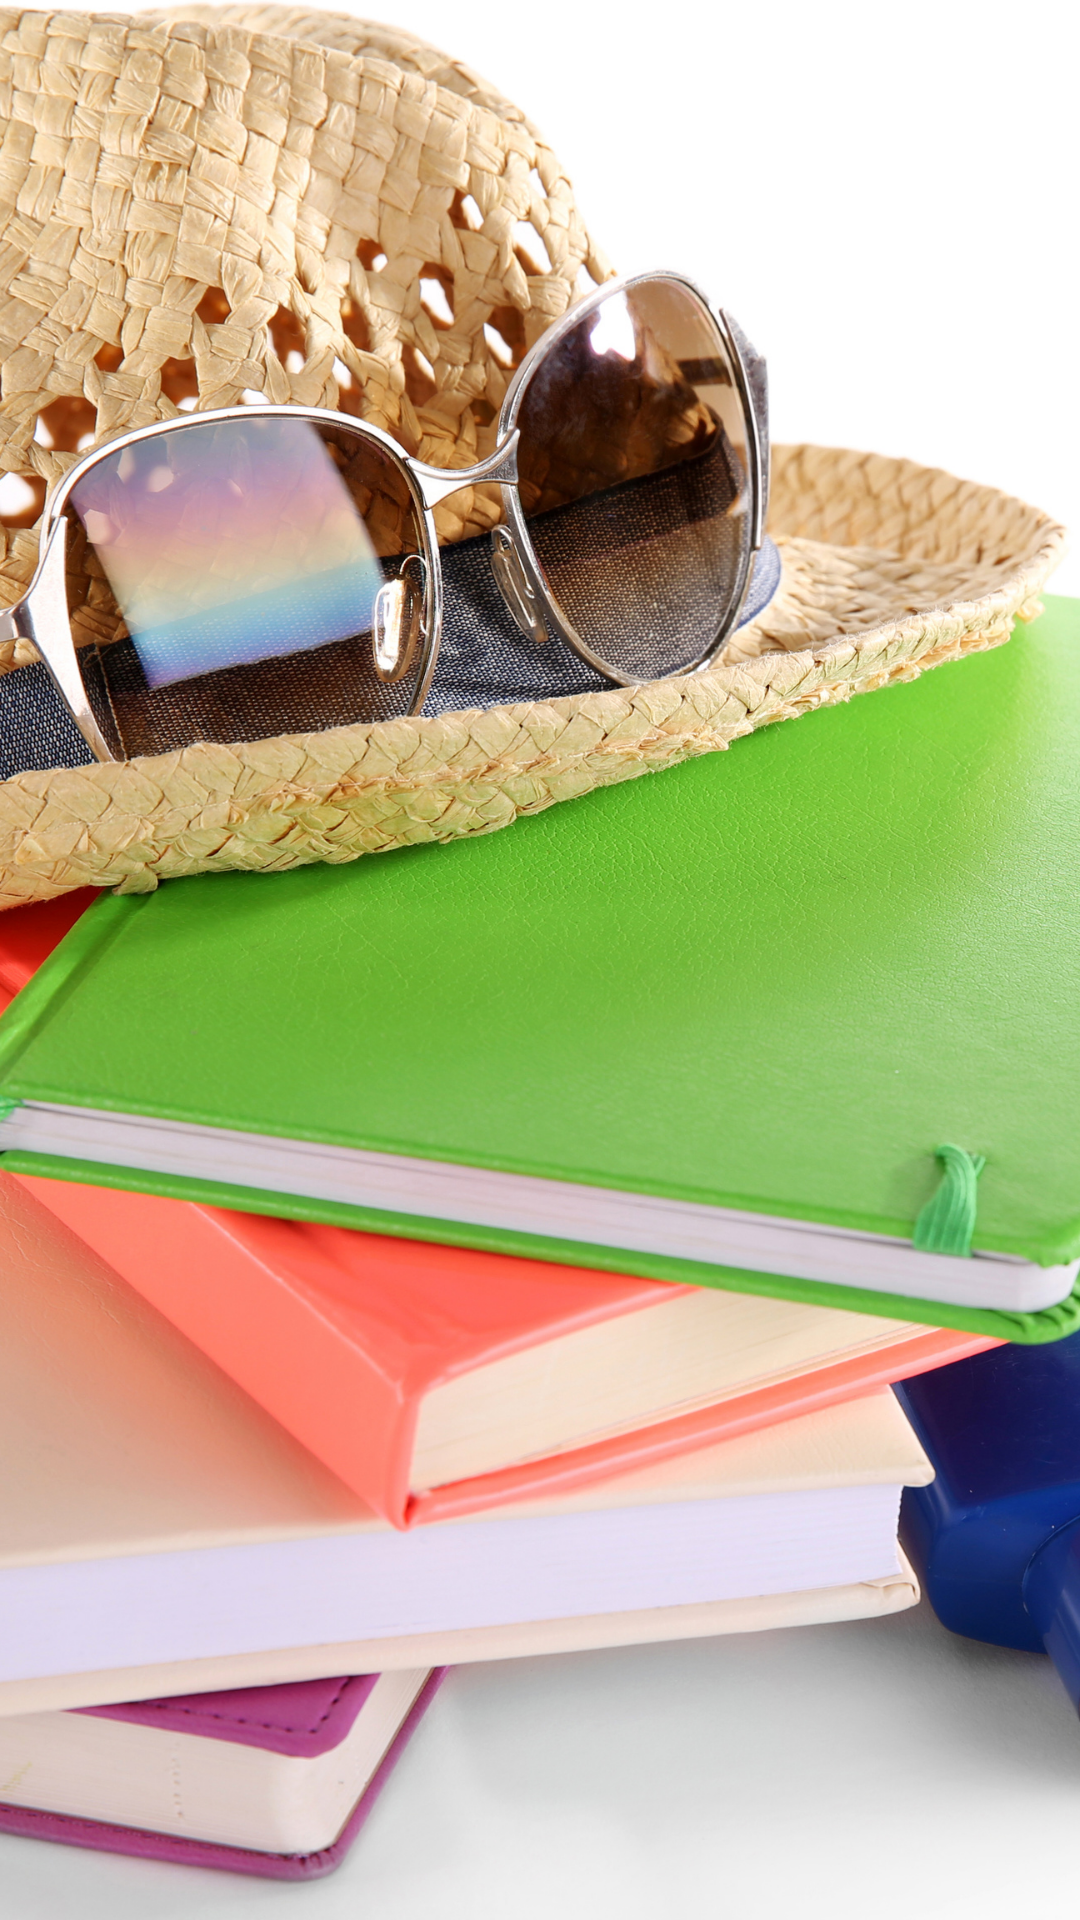 Journals with a beach hat